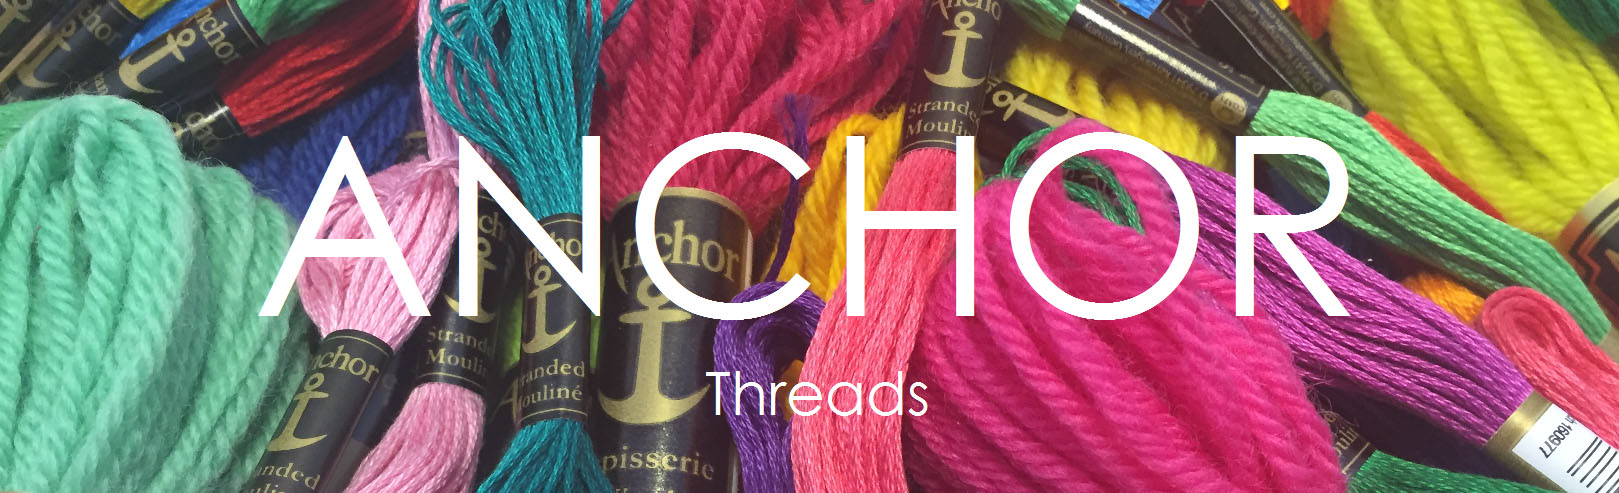 Anchor Threads and Wools